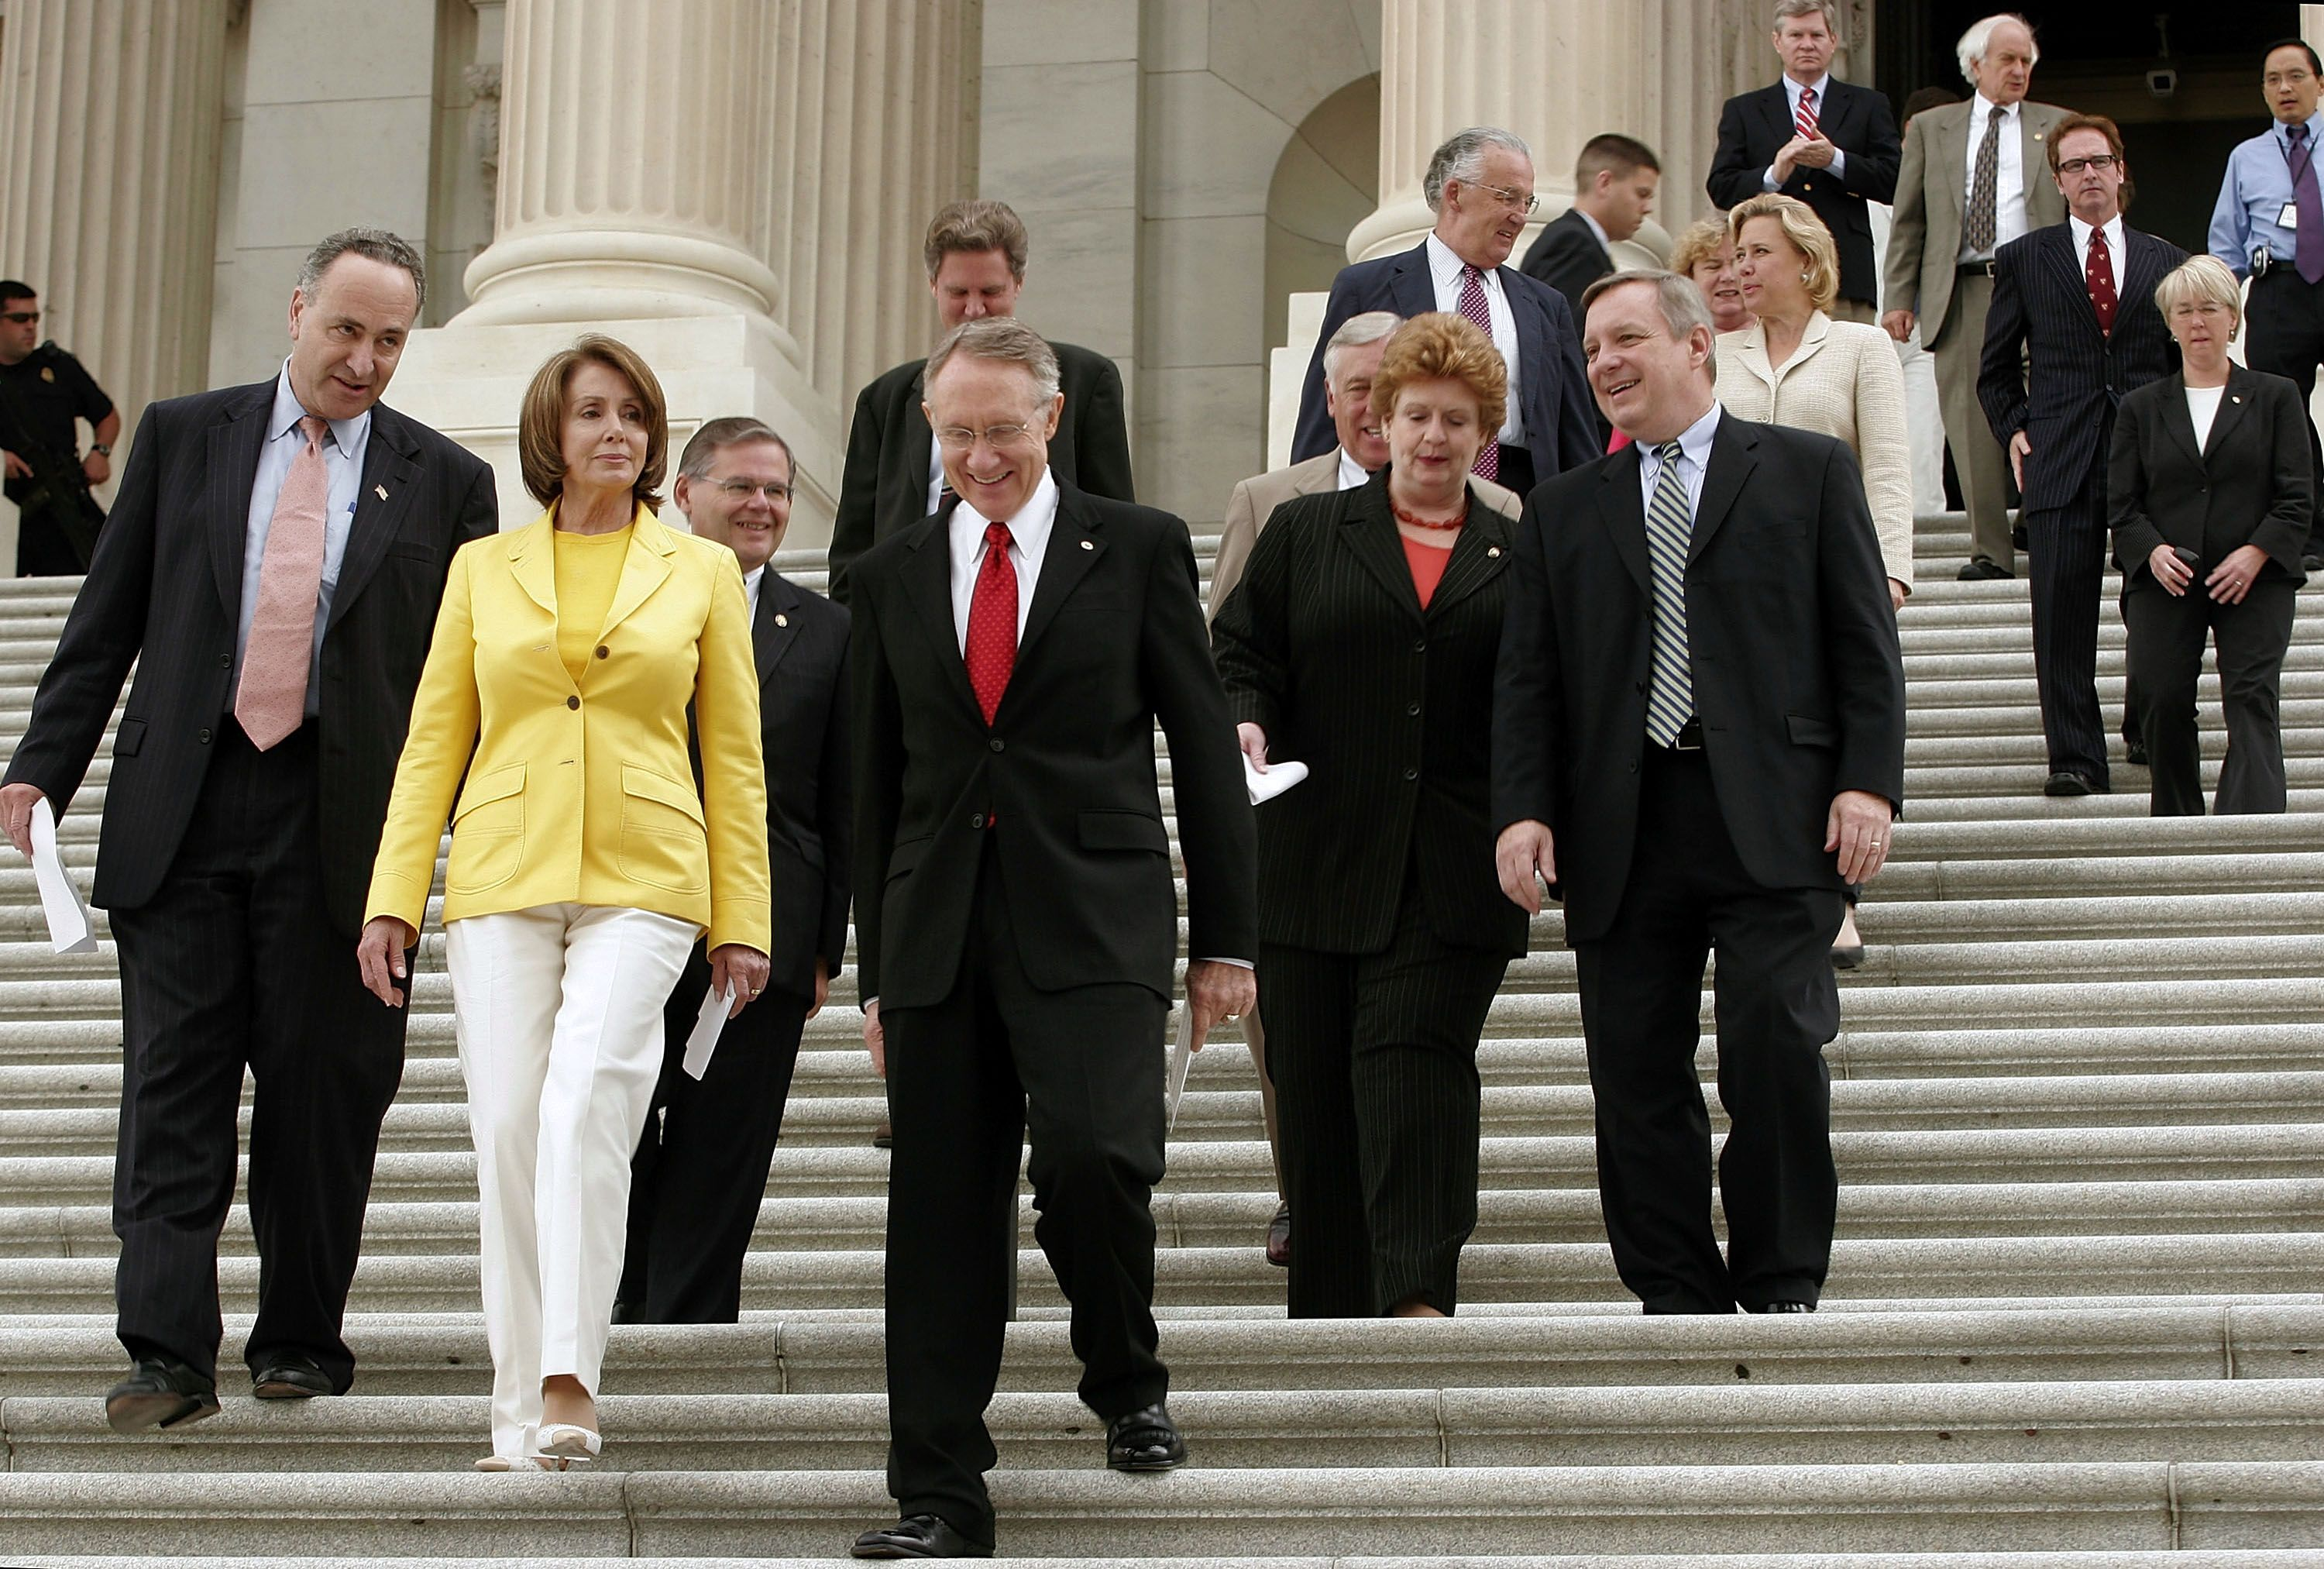 Pelosi departs the Senate with other Congressional Democrats after holding a press conference.